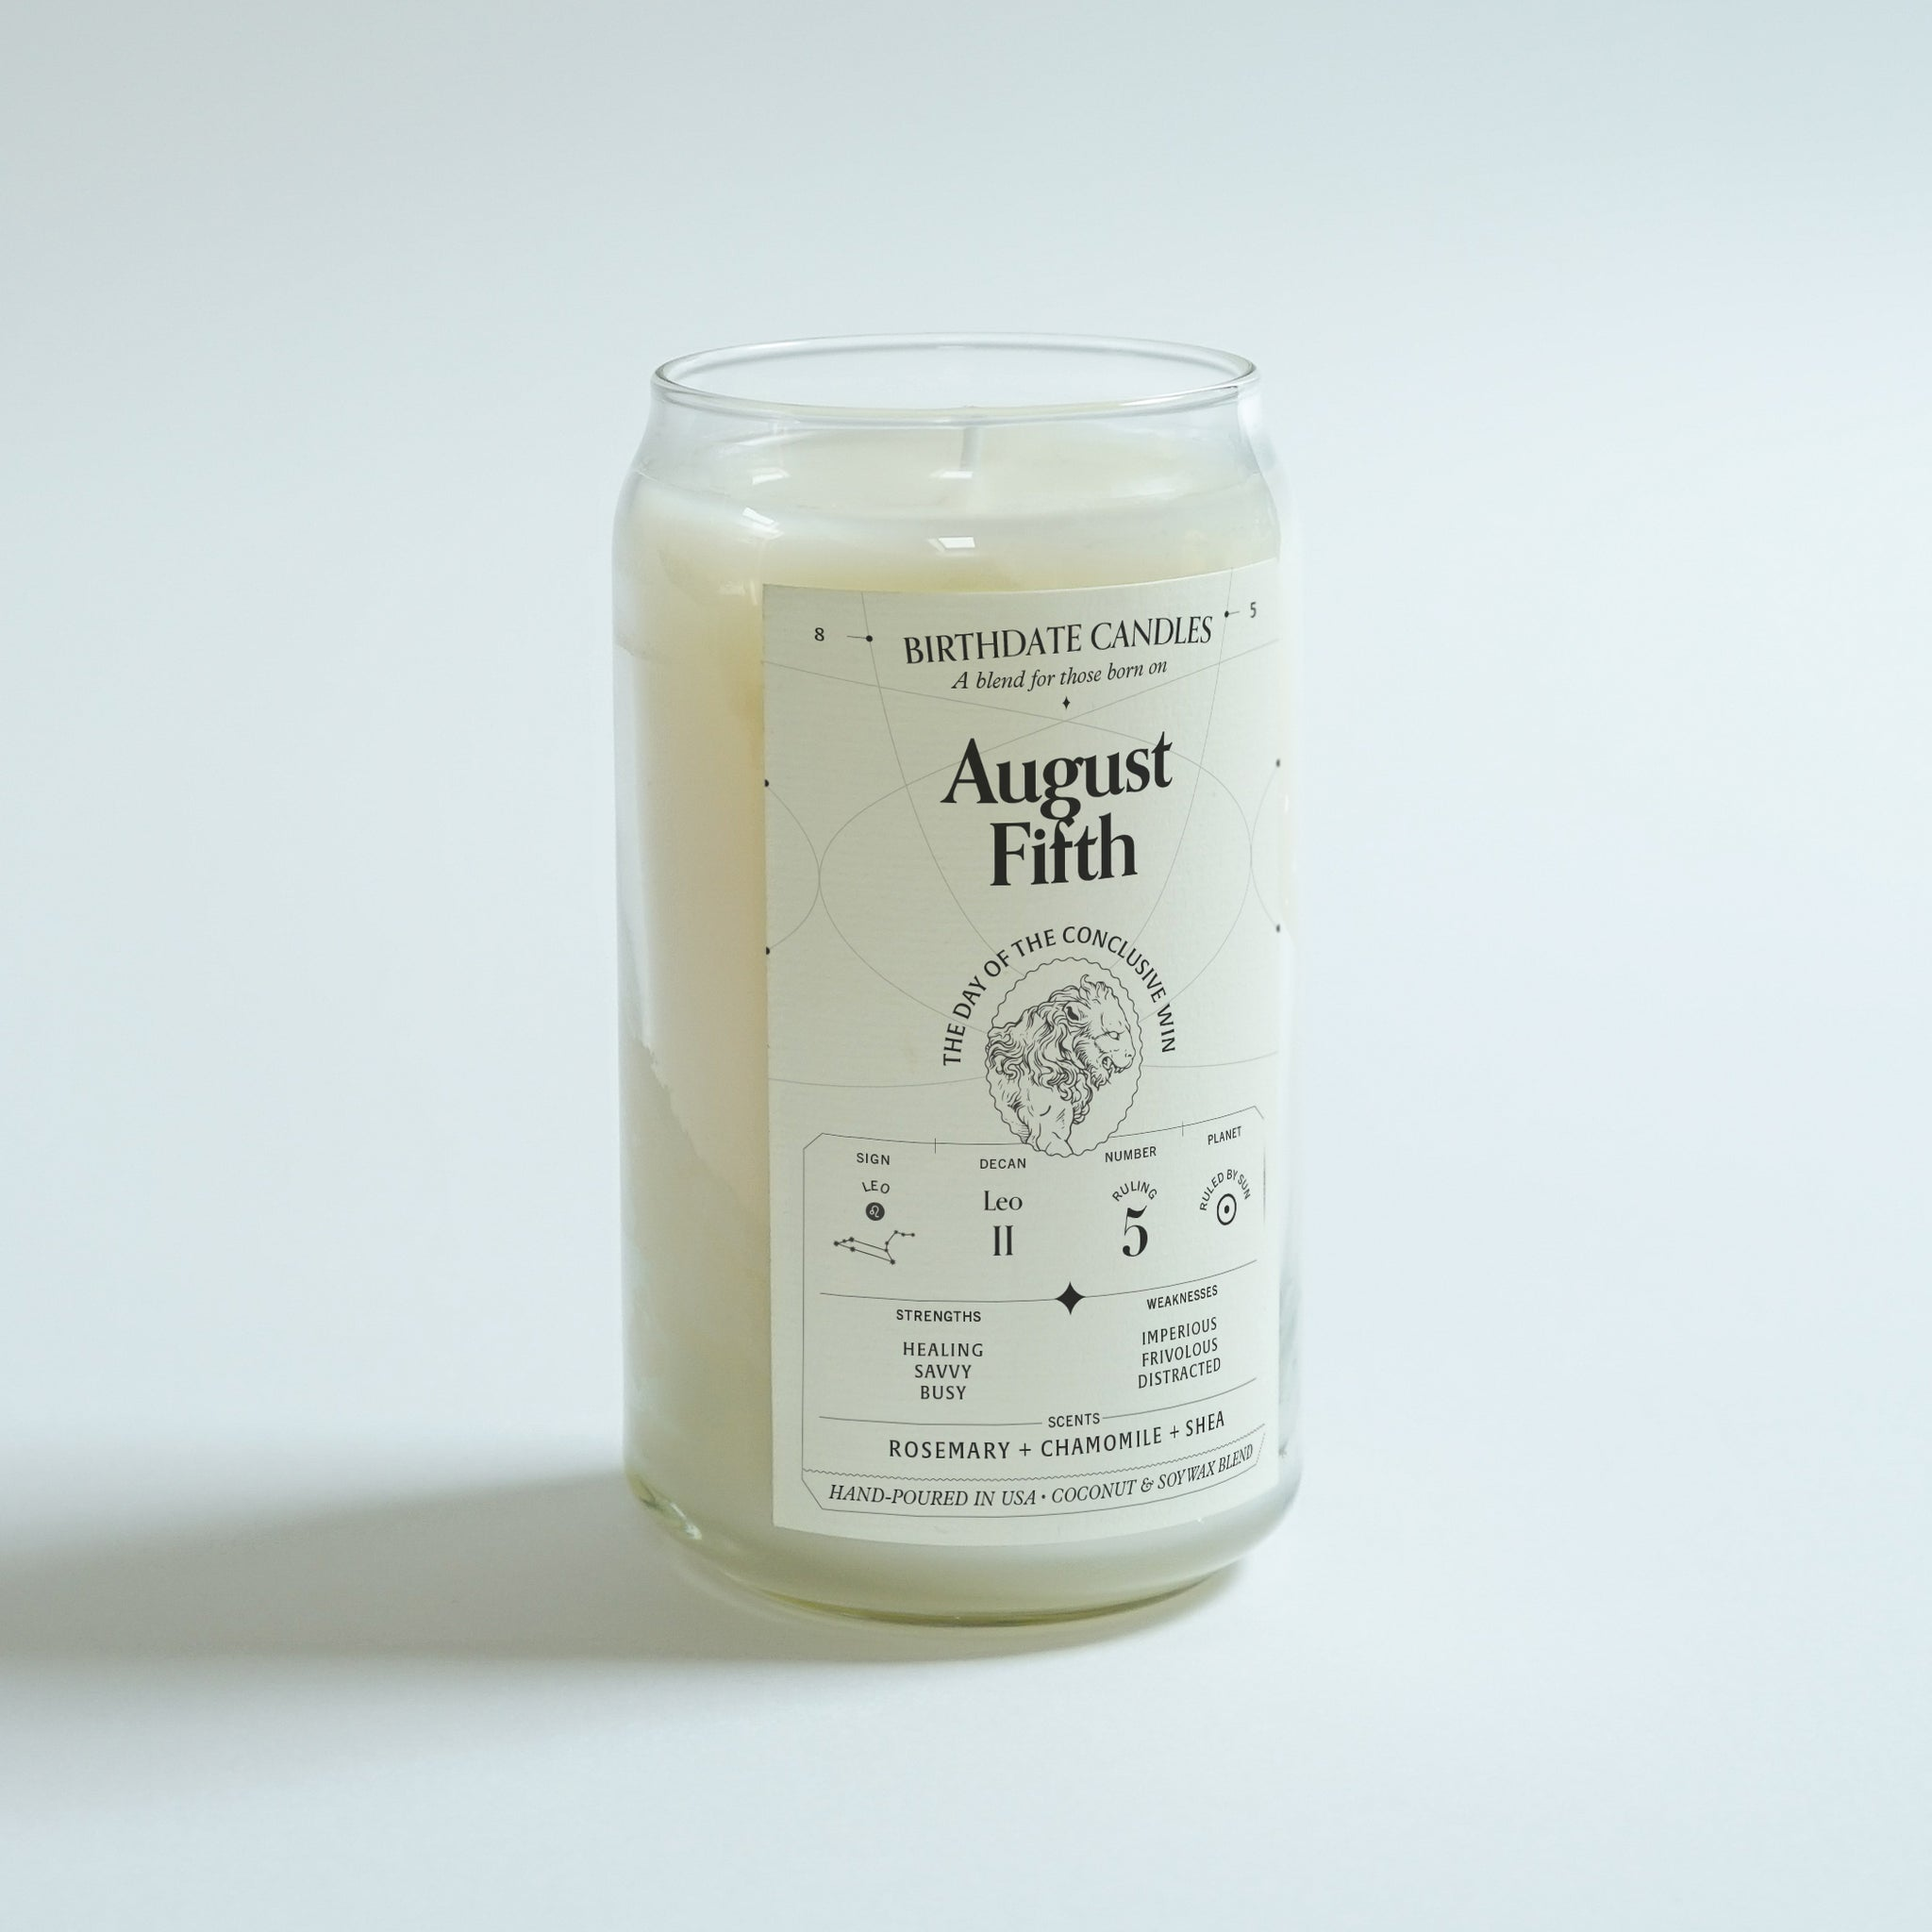 The August Fifth Birthday Candle